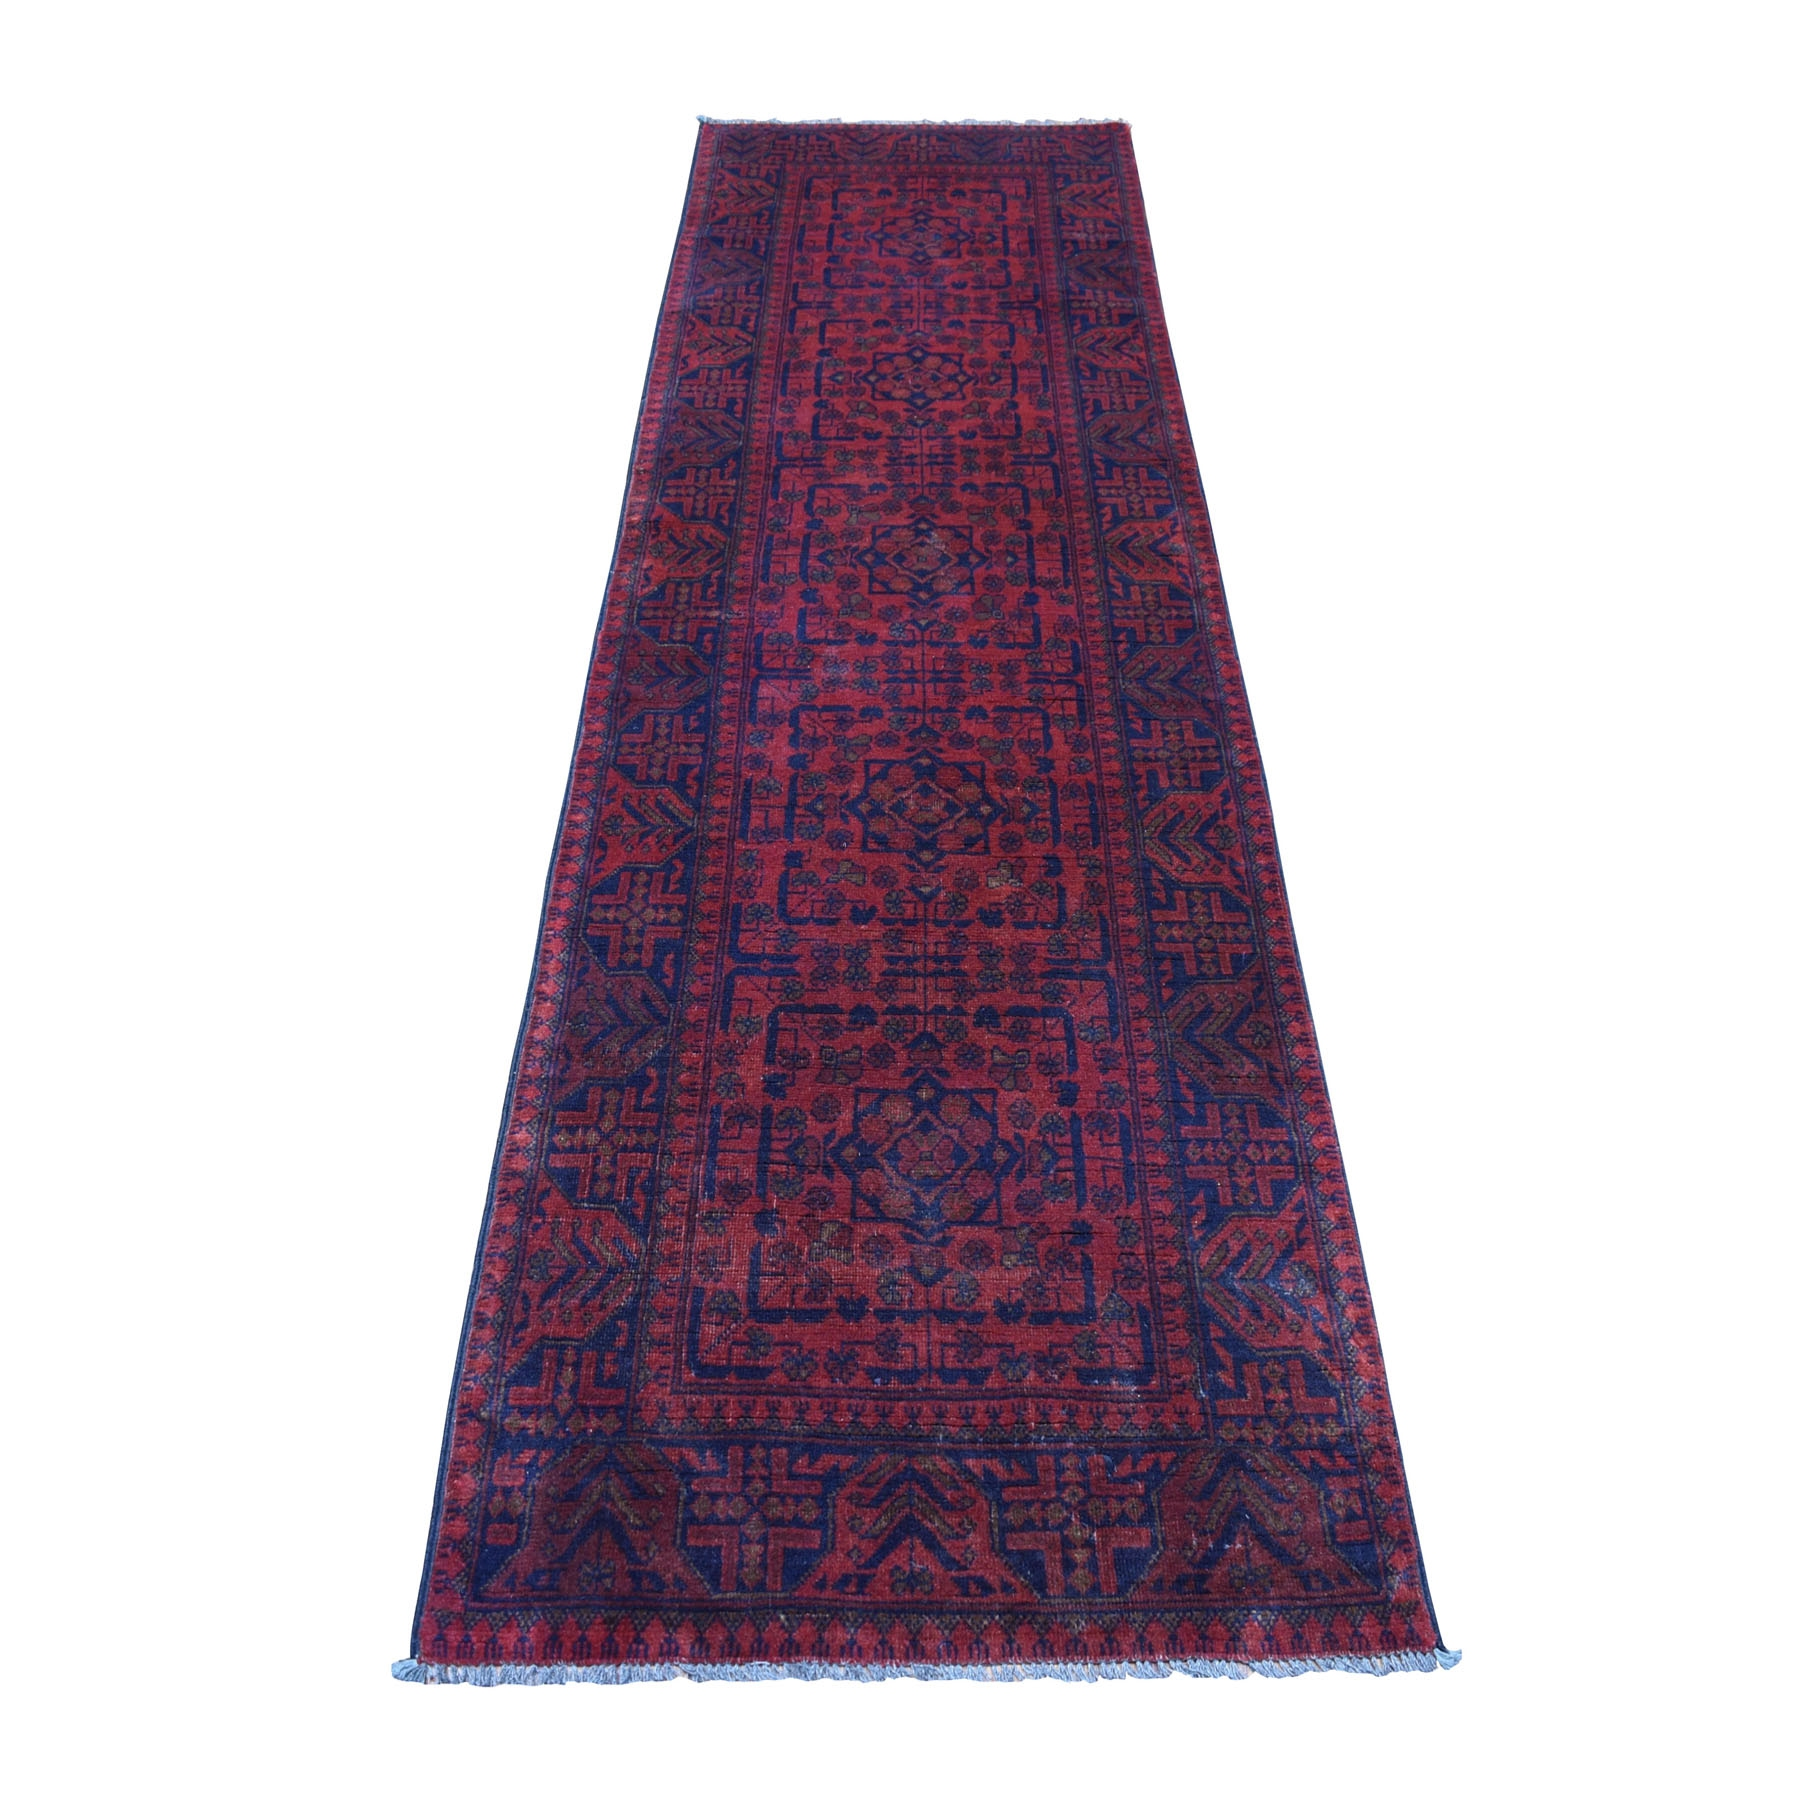 "2'7""x9'6"" Deep and Saturated Red Geometric Afghan Andkhoy Runner Pure Wool Hand Woven Oriental Rug"